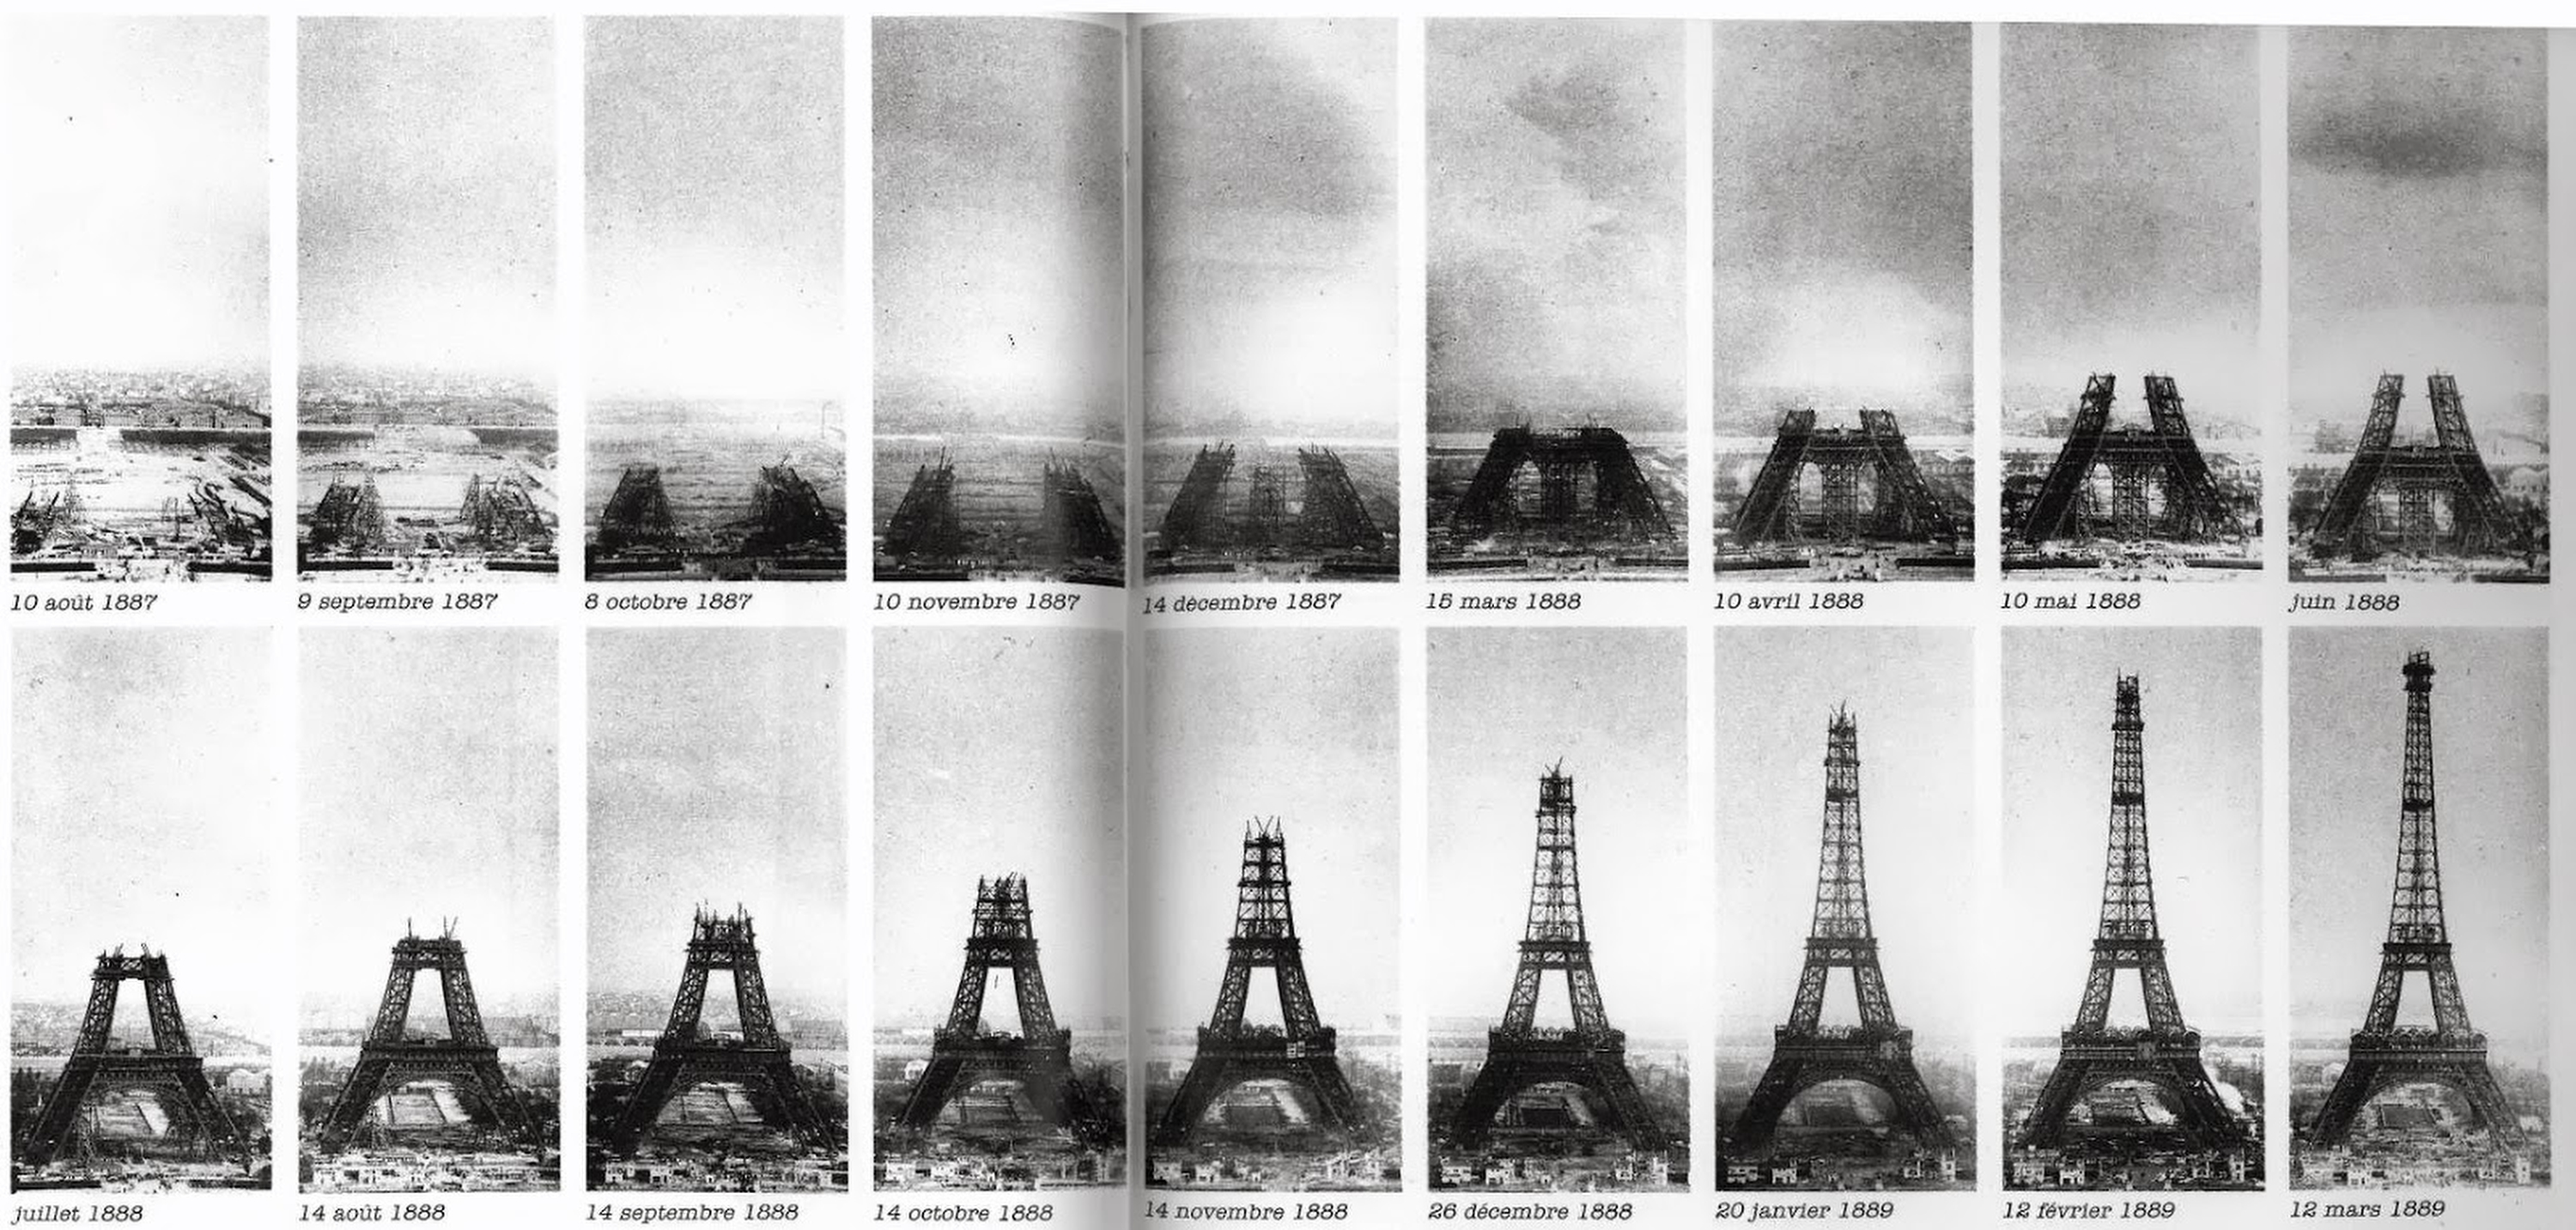 when did the eiffel tower open to the public | Top HQ images.com